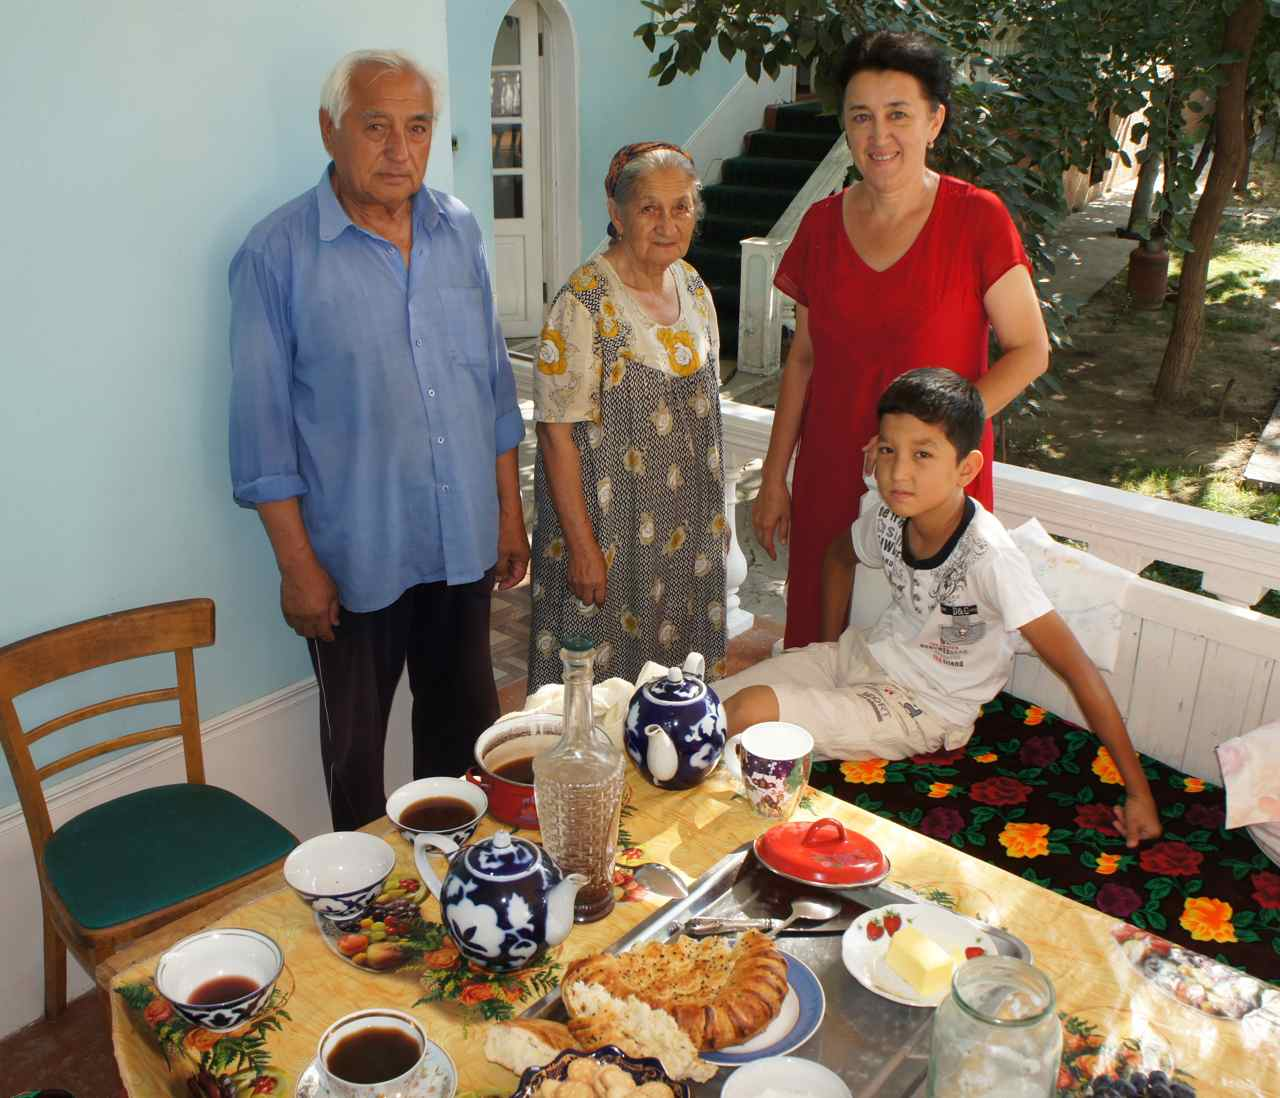 The uzbek family who invited us to a second breakfast